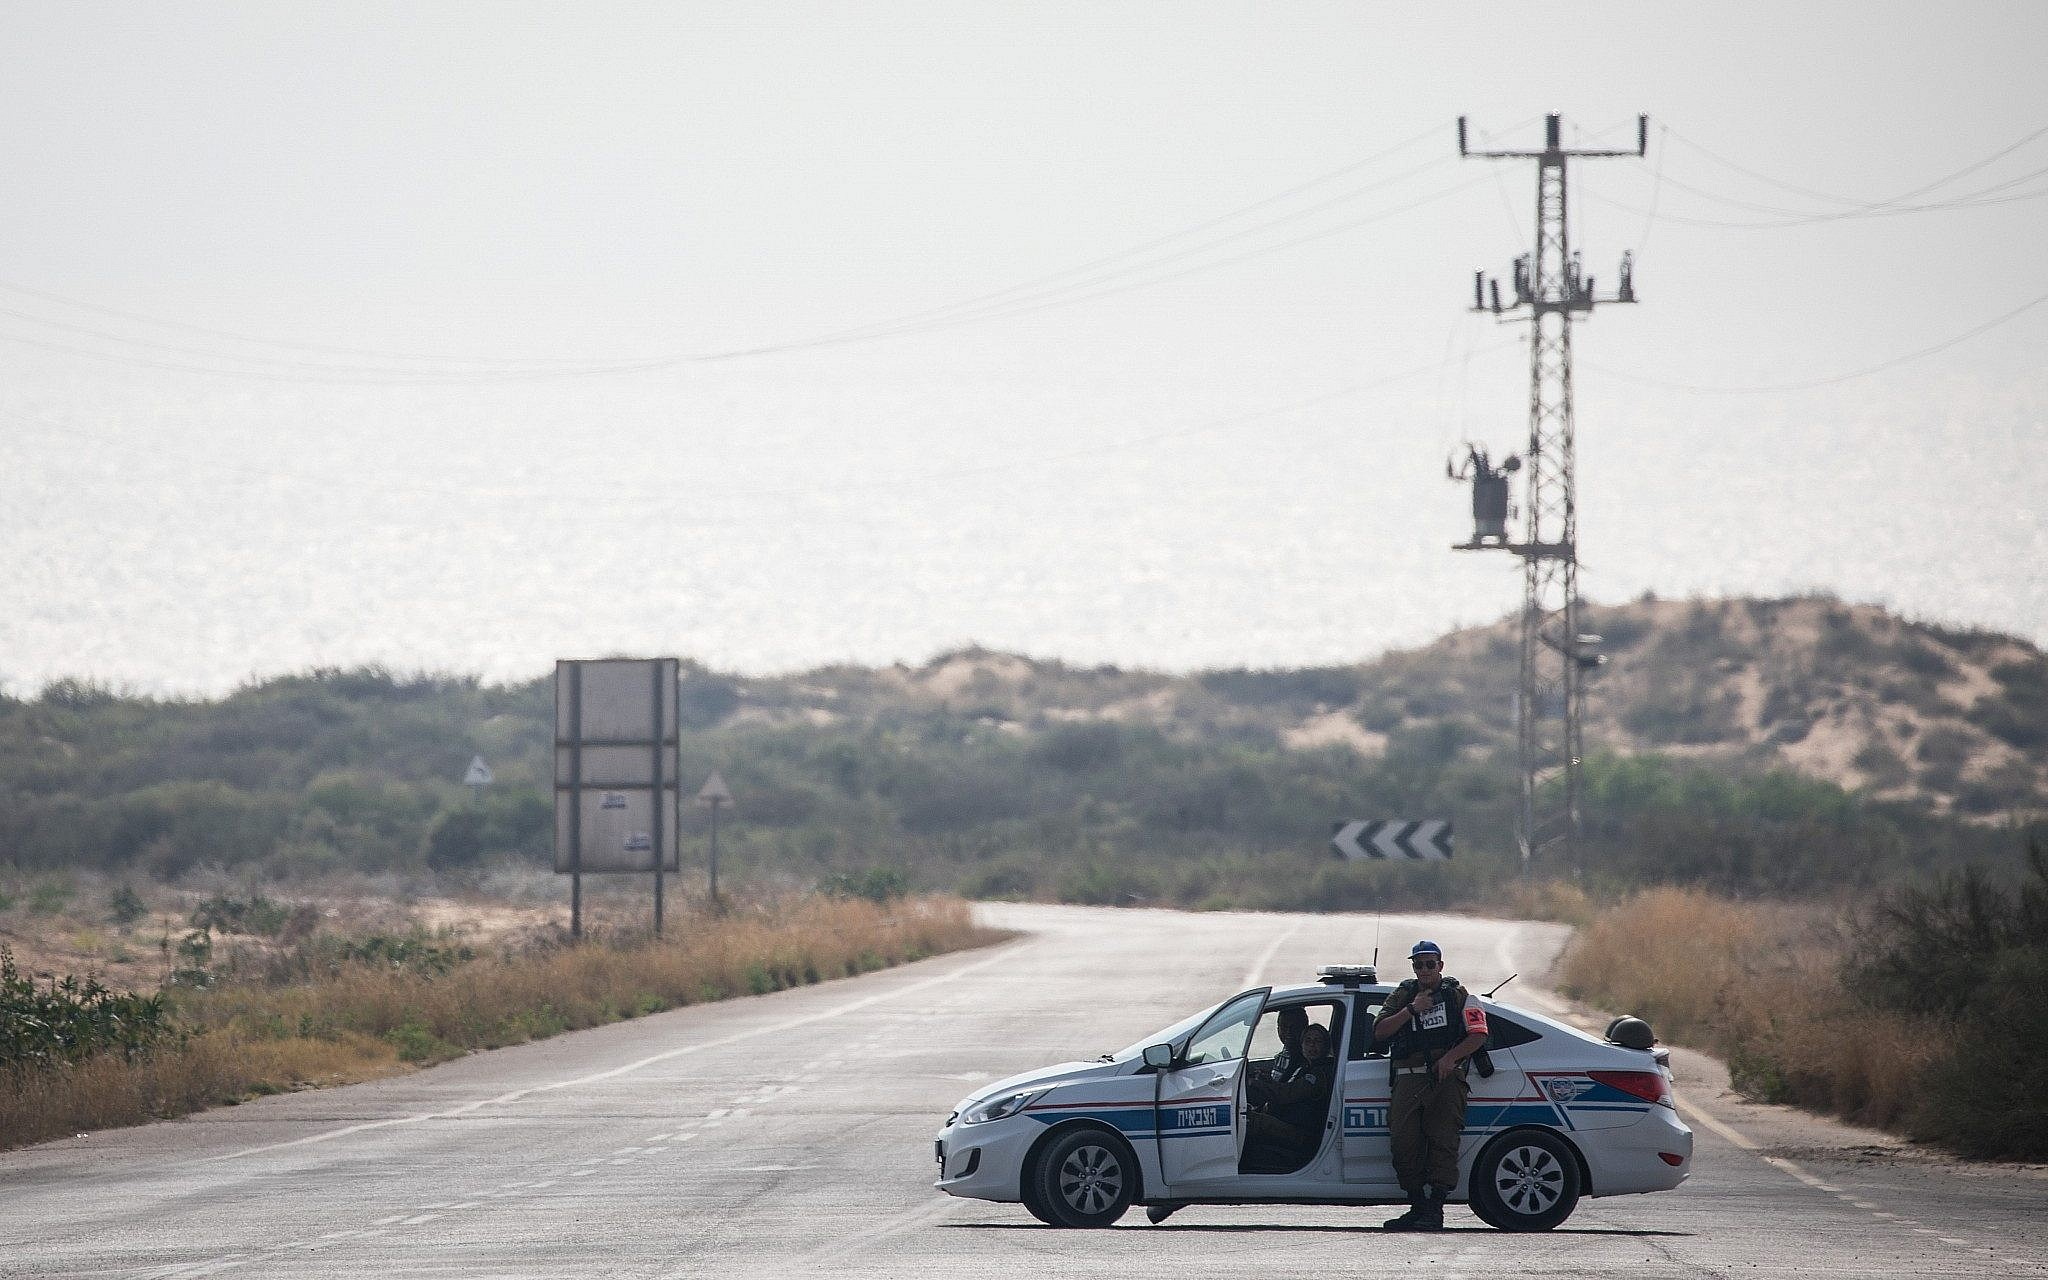 Hamas pounds southern Israel with 70 rockets, IDF strikes back